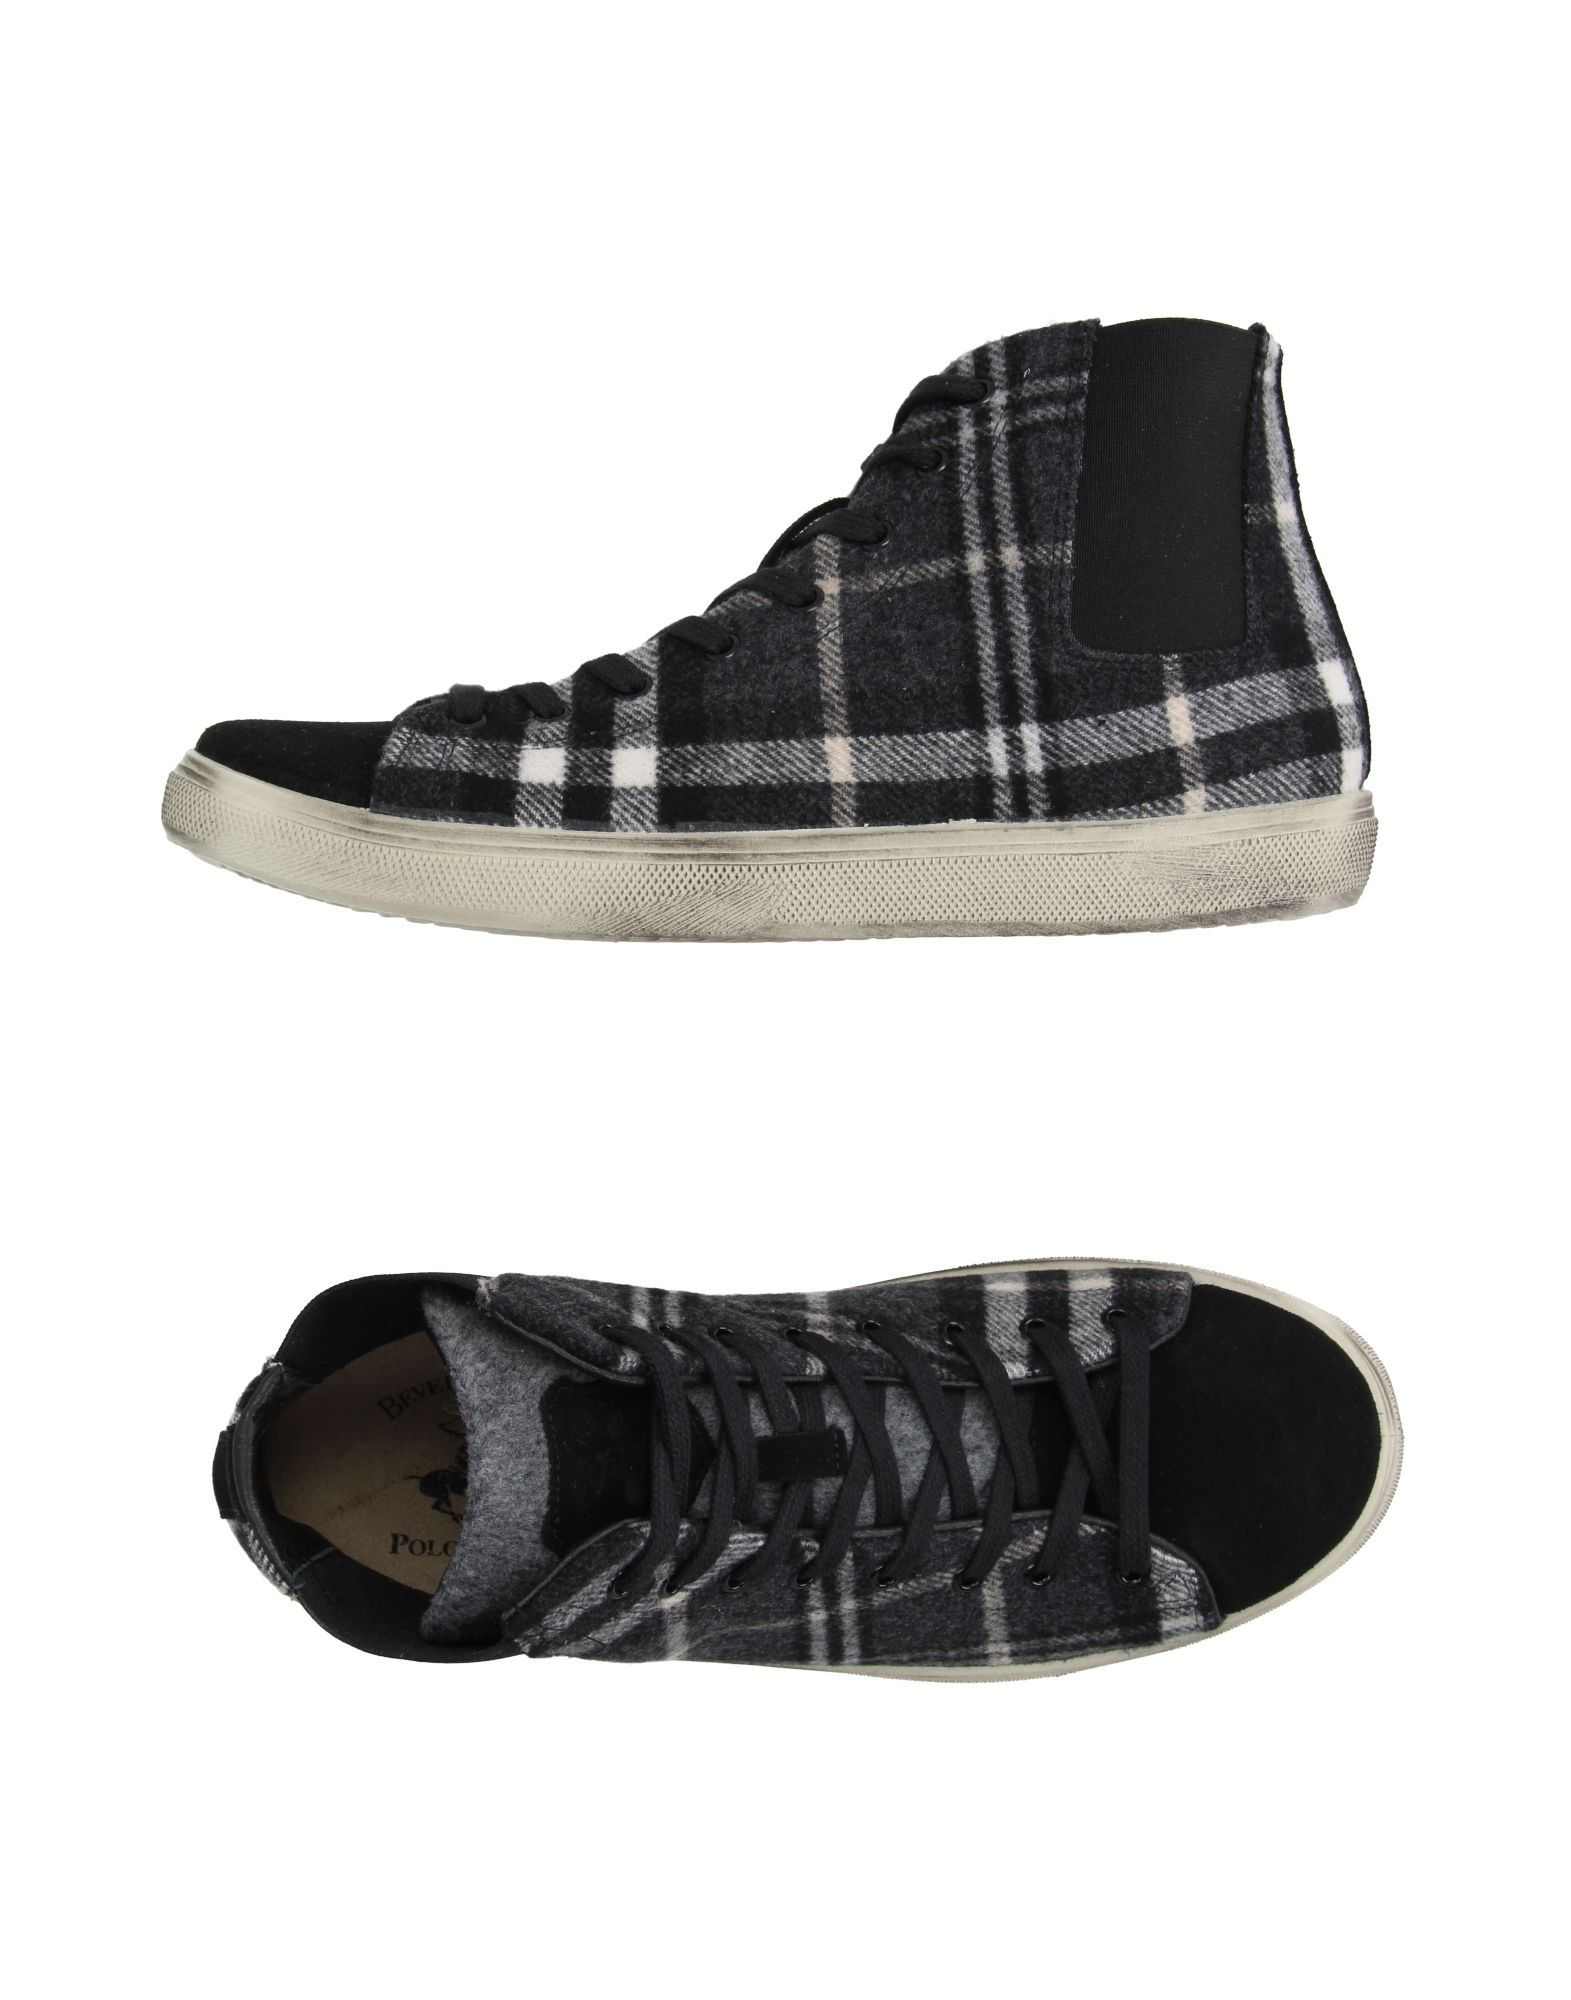 Beverly Hills Polo Club 11190557CV Sneakers Herren  11190557CV Club 039e59